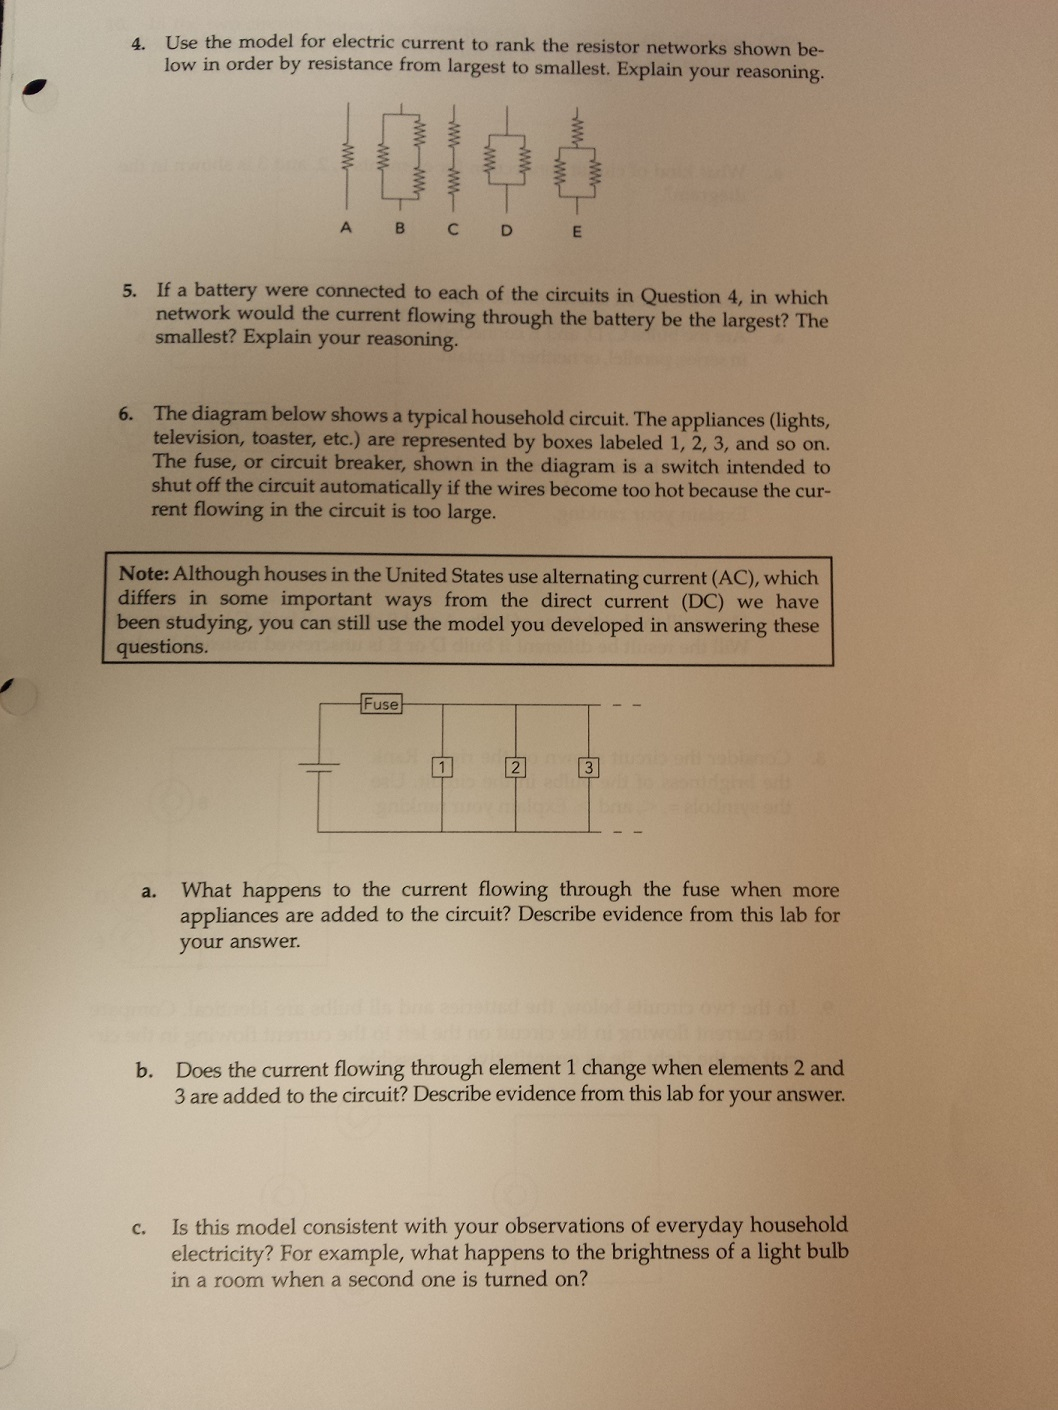 Solved I Dont Understand The Concepts Behind Currents In Circuit Breaker Is A Switch Designed To Automatically Shut Off Use Model For Electric Current Rank Res